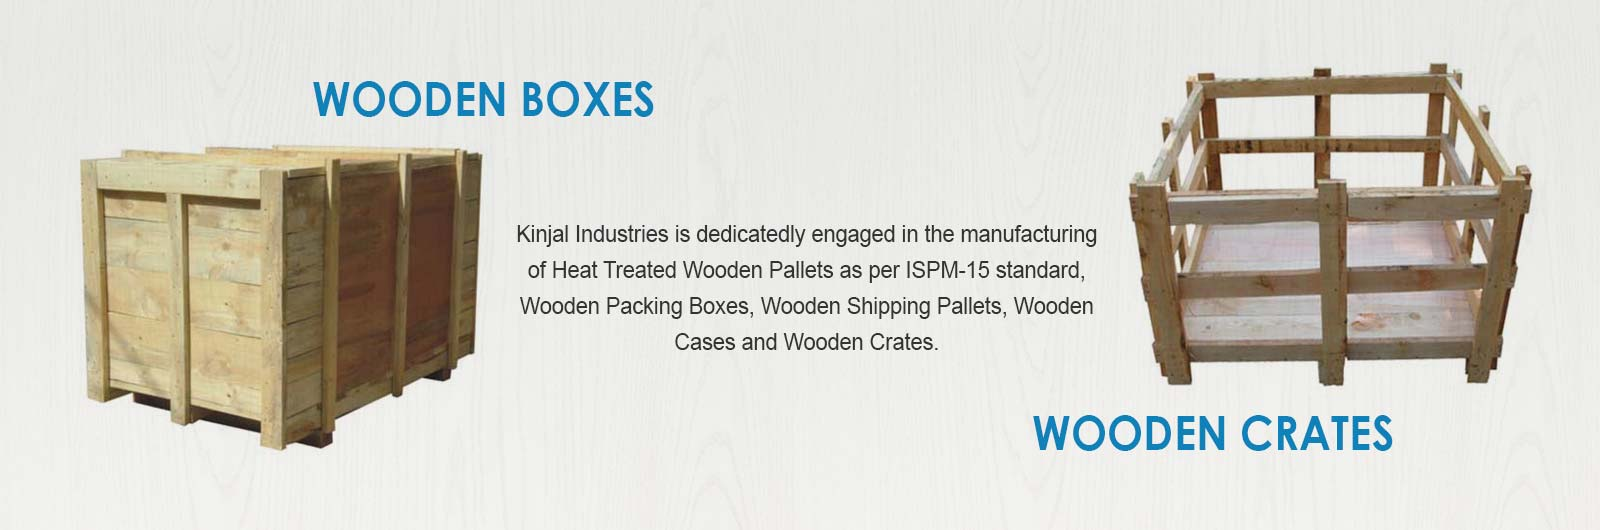 Wooden Boxes, Wooden Crates Manufacturers in Kutch